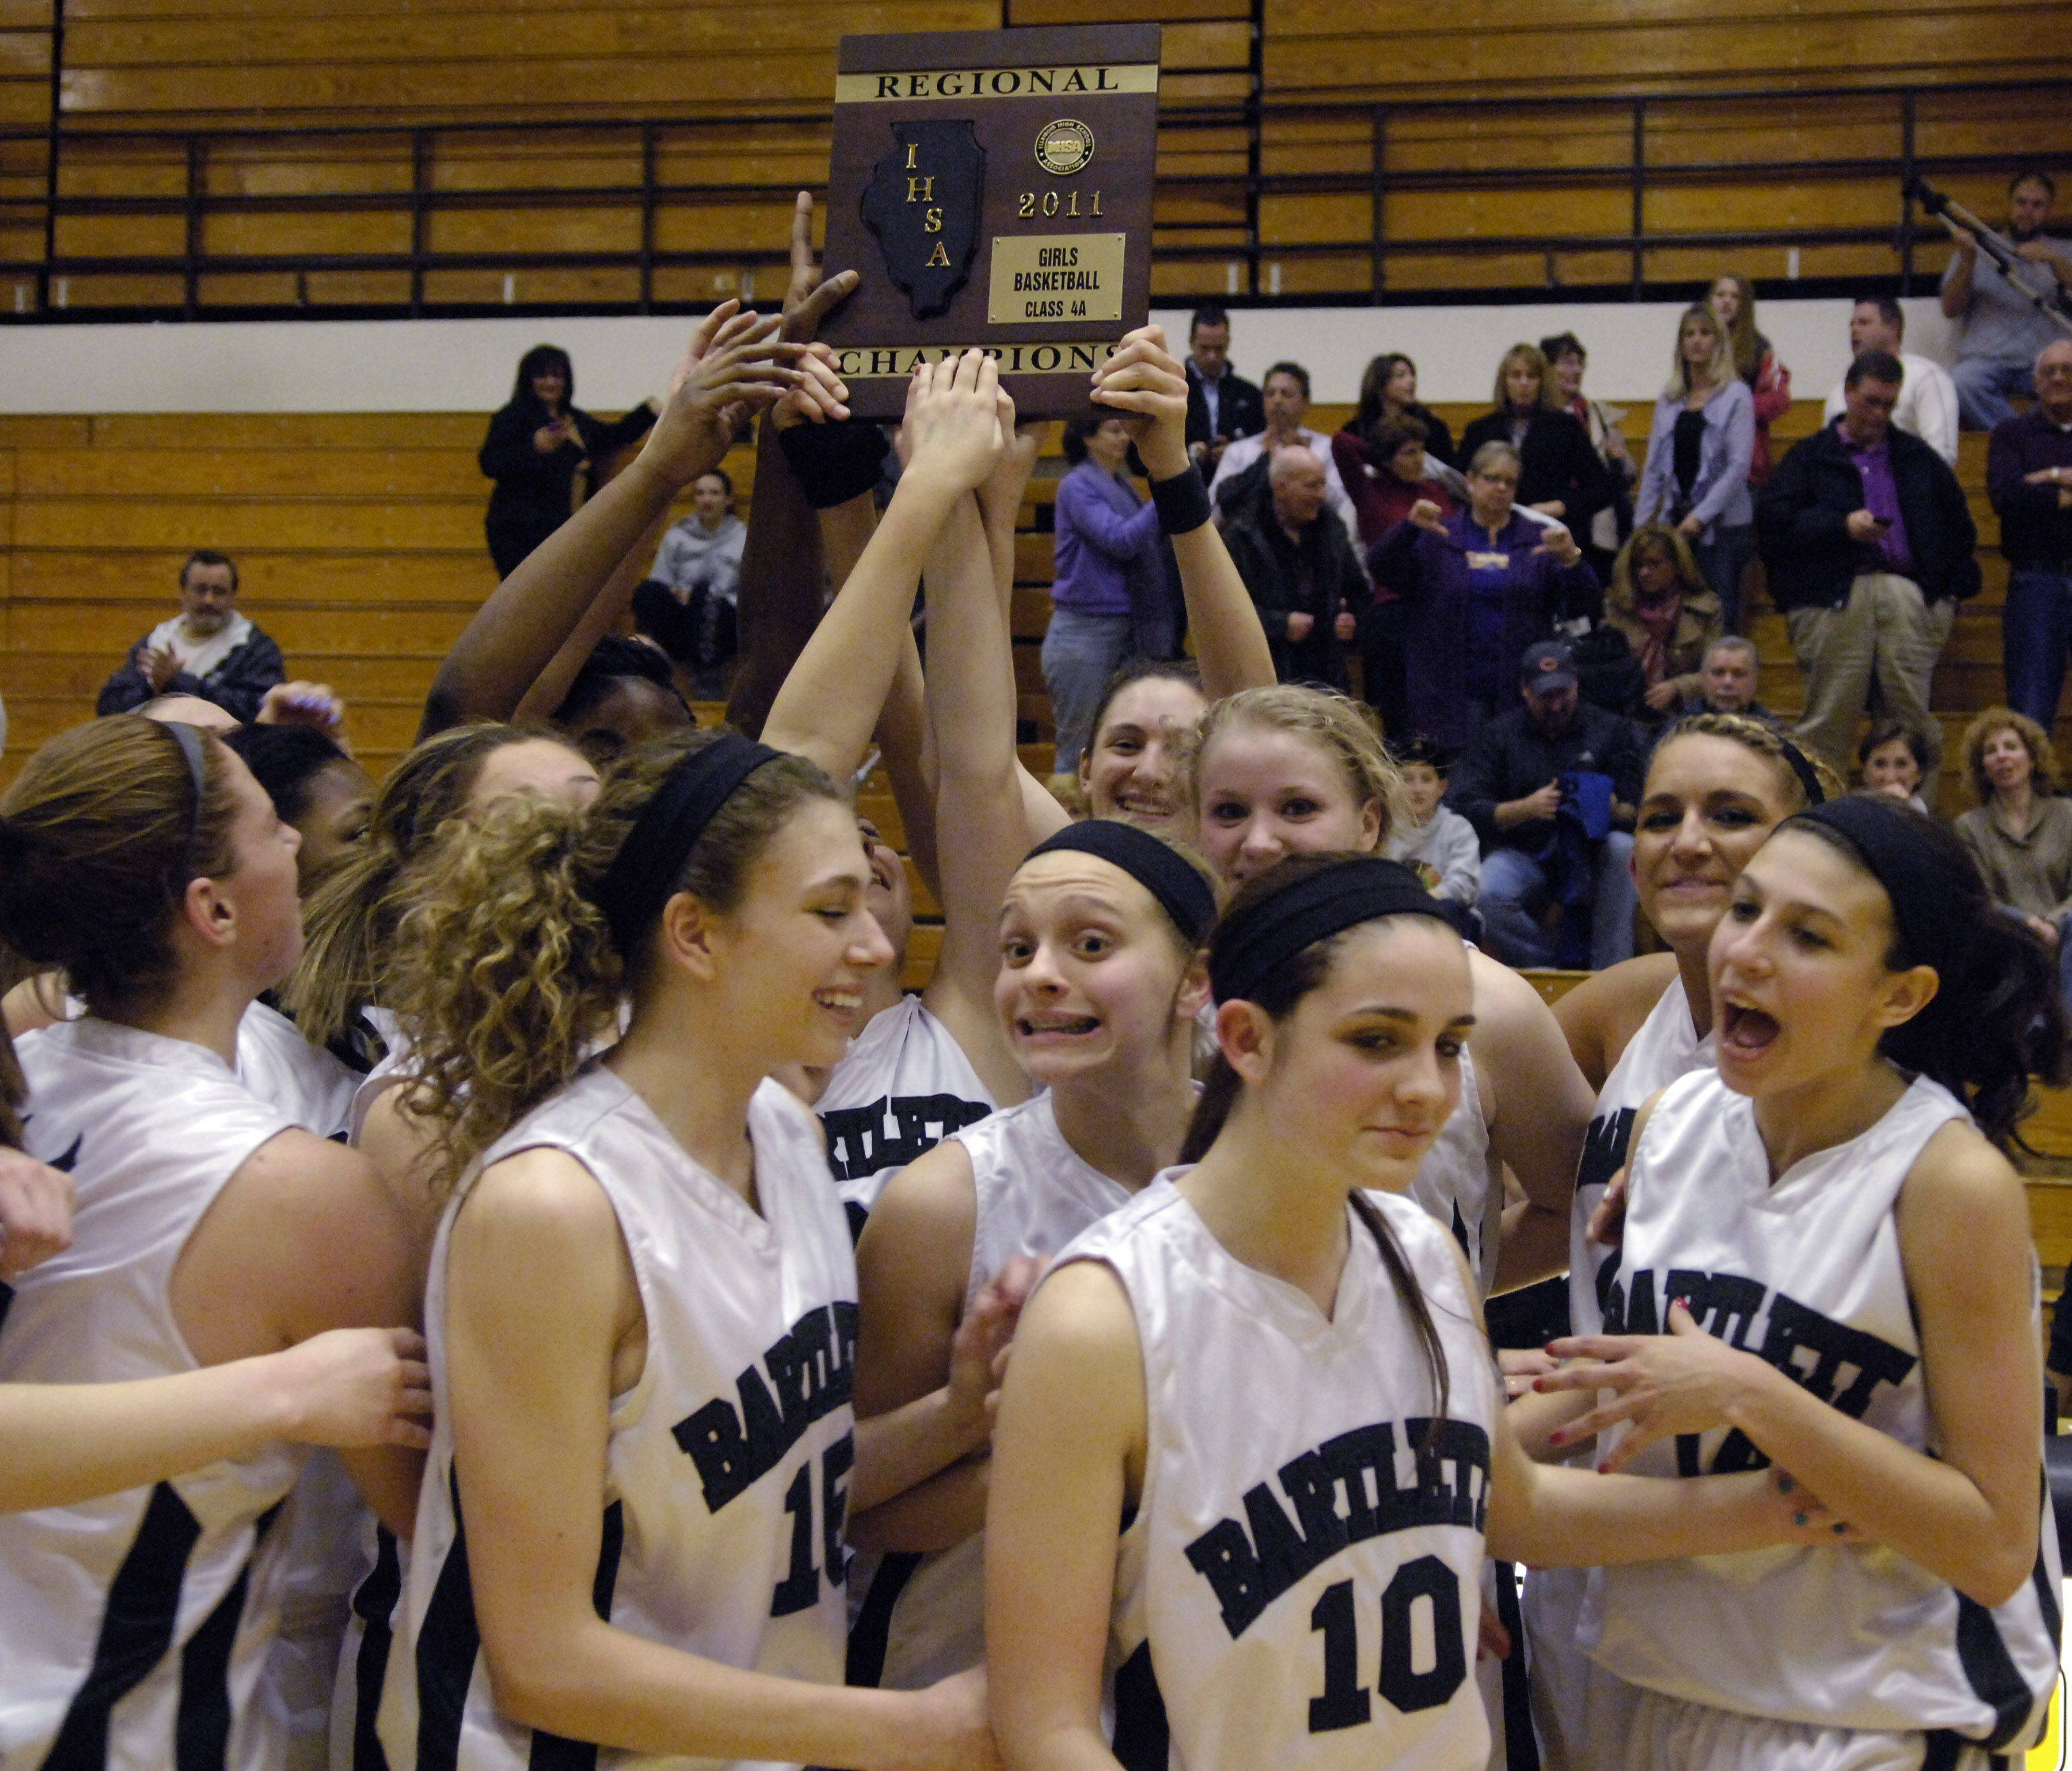 The Bartlett girls basketball team hopes it has at least one more piece of hardware to hoist this season. The 28-1 Hawks play Trinity Tuesday at the Class 4A York sectional.